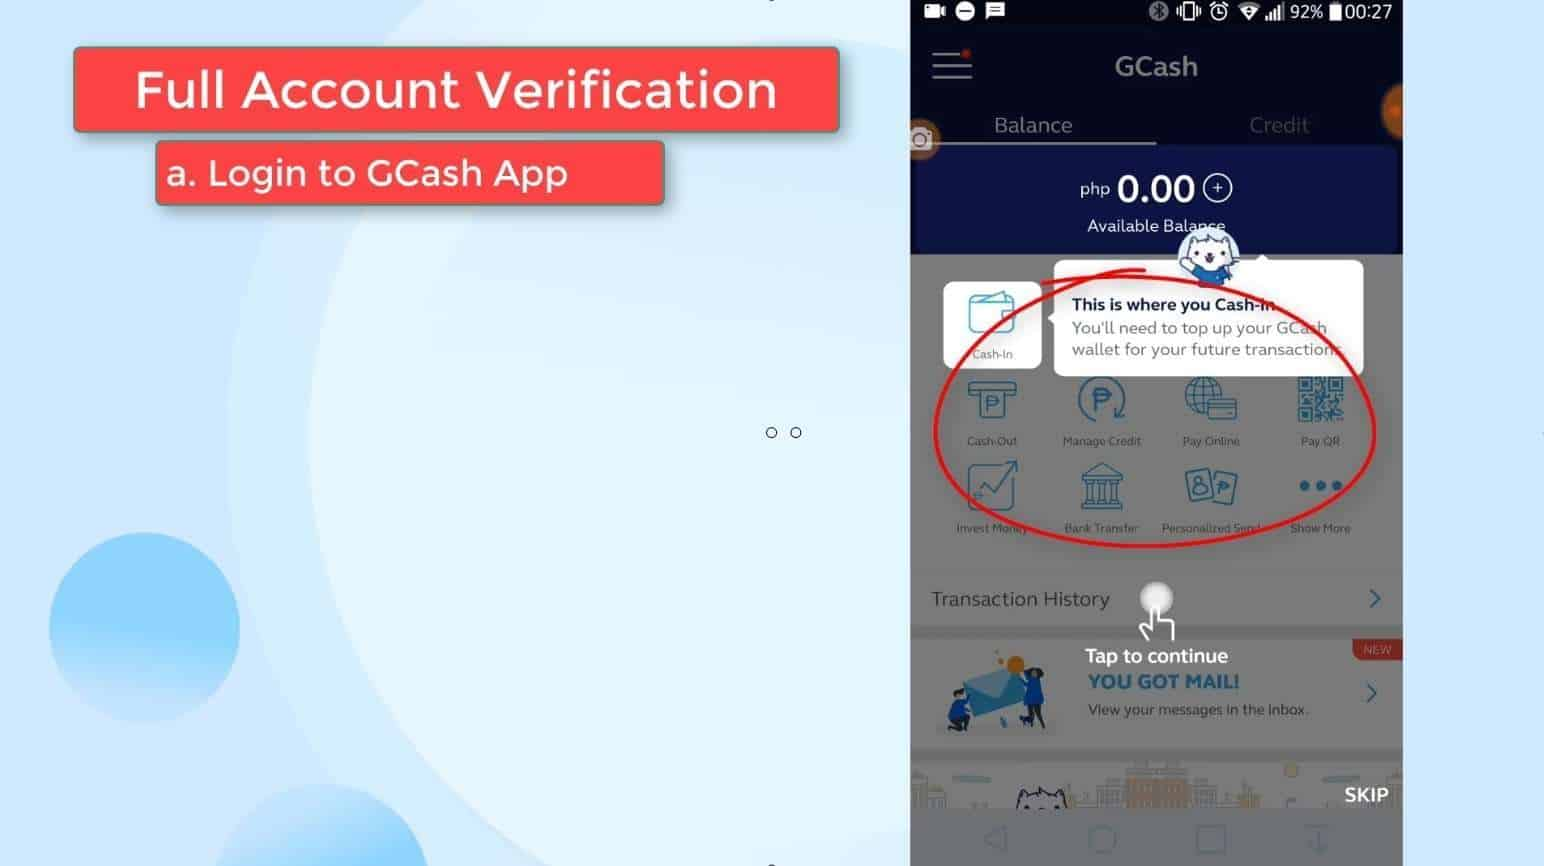 GCash Verify 15